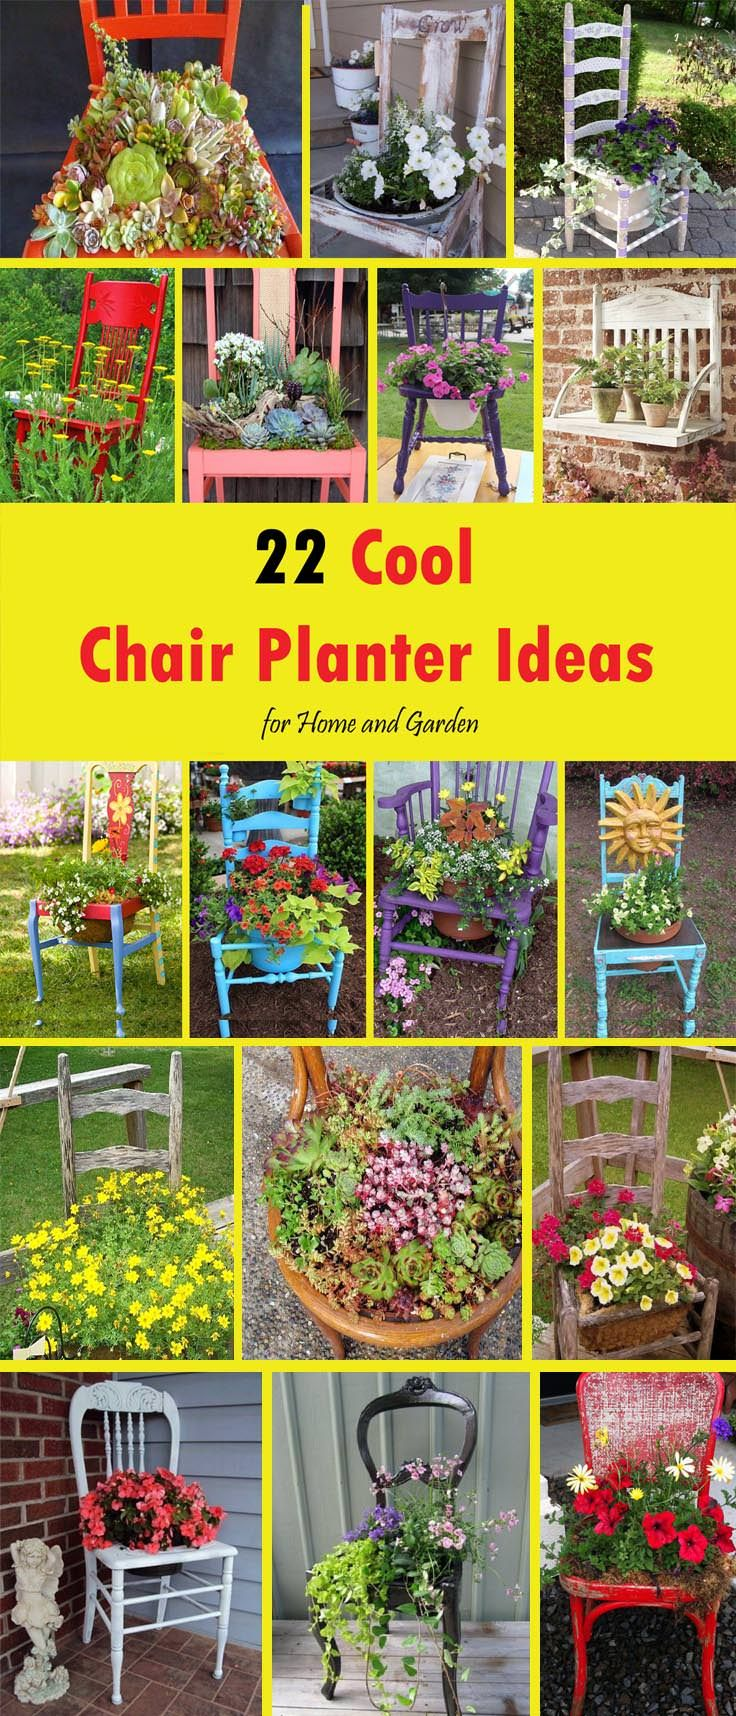 What Do You Do With An Old Or Simply Unnecessary Chairs? You Will Throw  Them. But Wait! You Can Grow Plants In Them And Here In This Article You  Will 22 ...